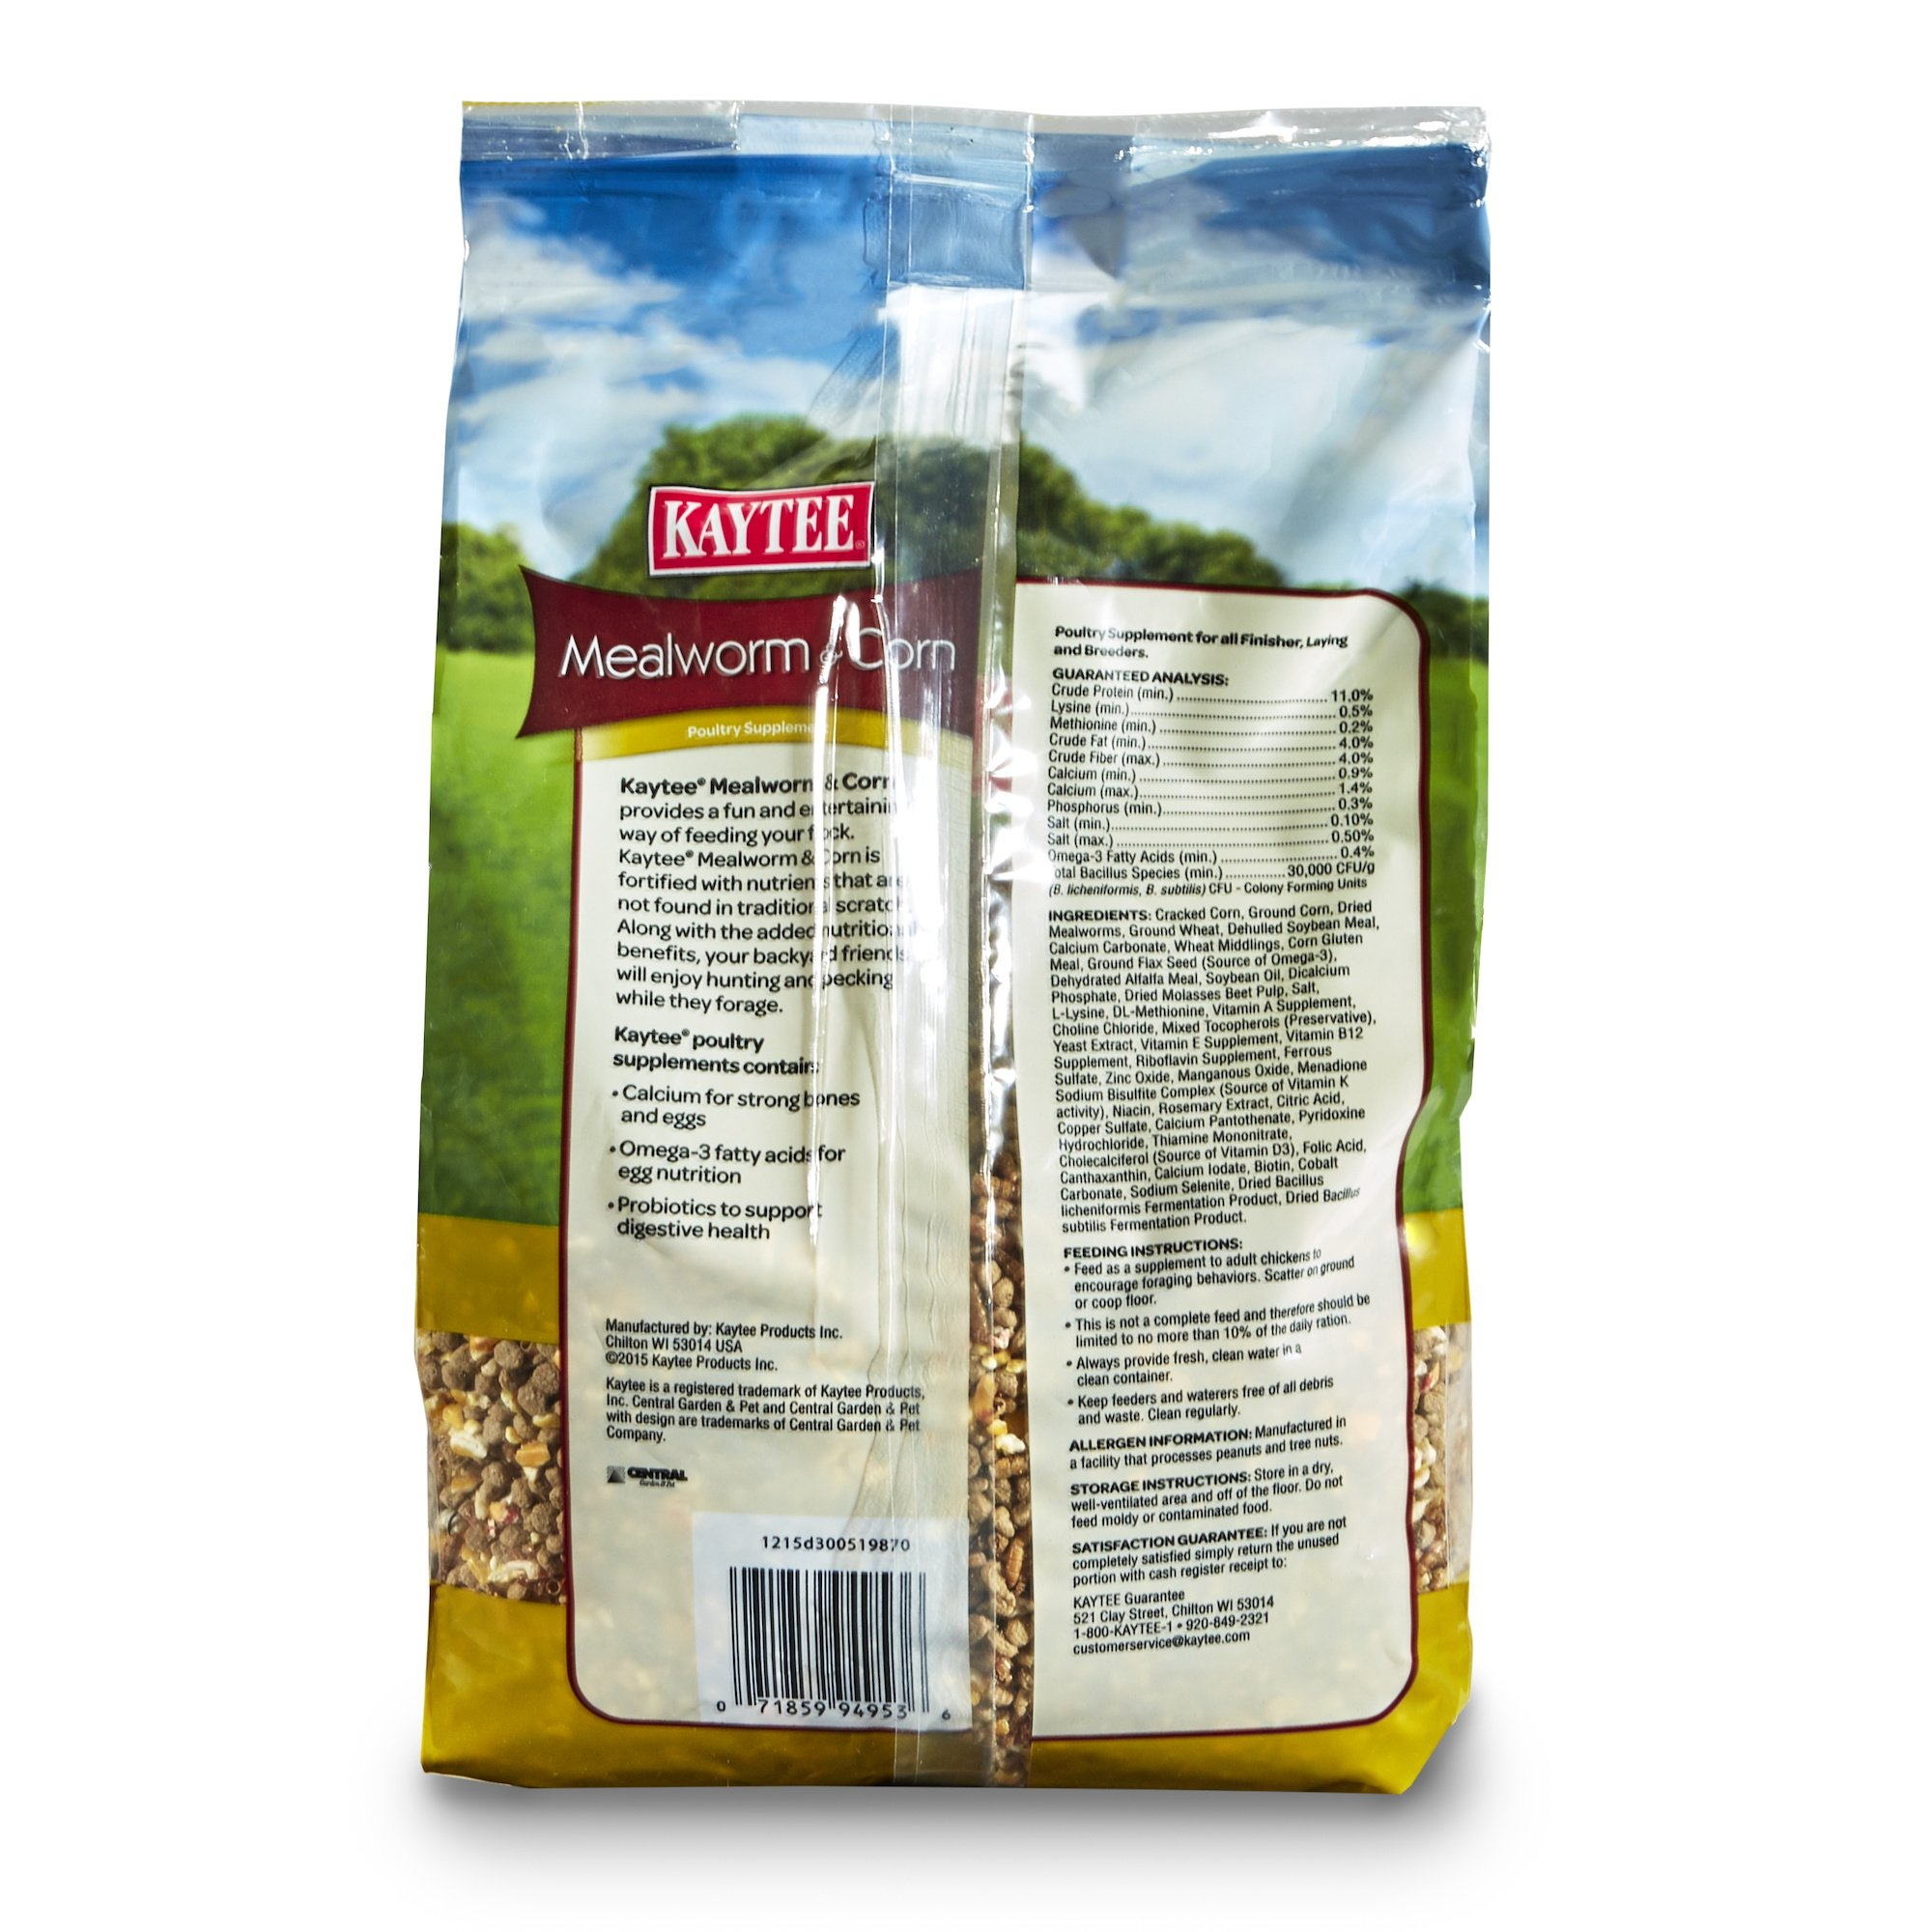 Kaytee Mealworms and Corn Treat, 3 Pound by Kaytee (Image #2)